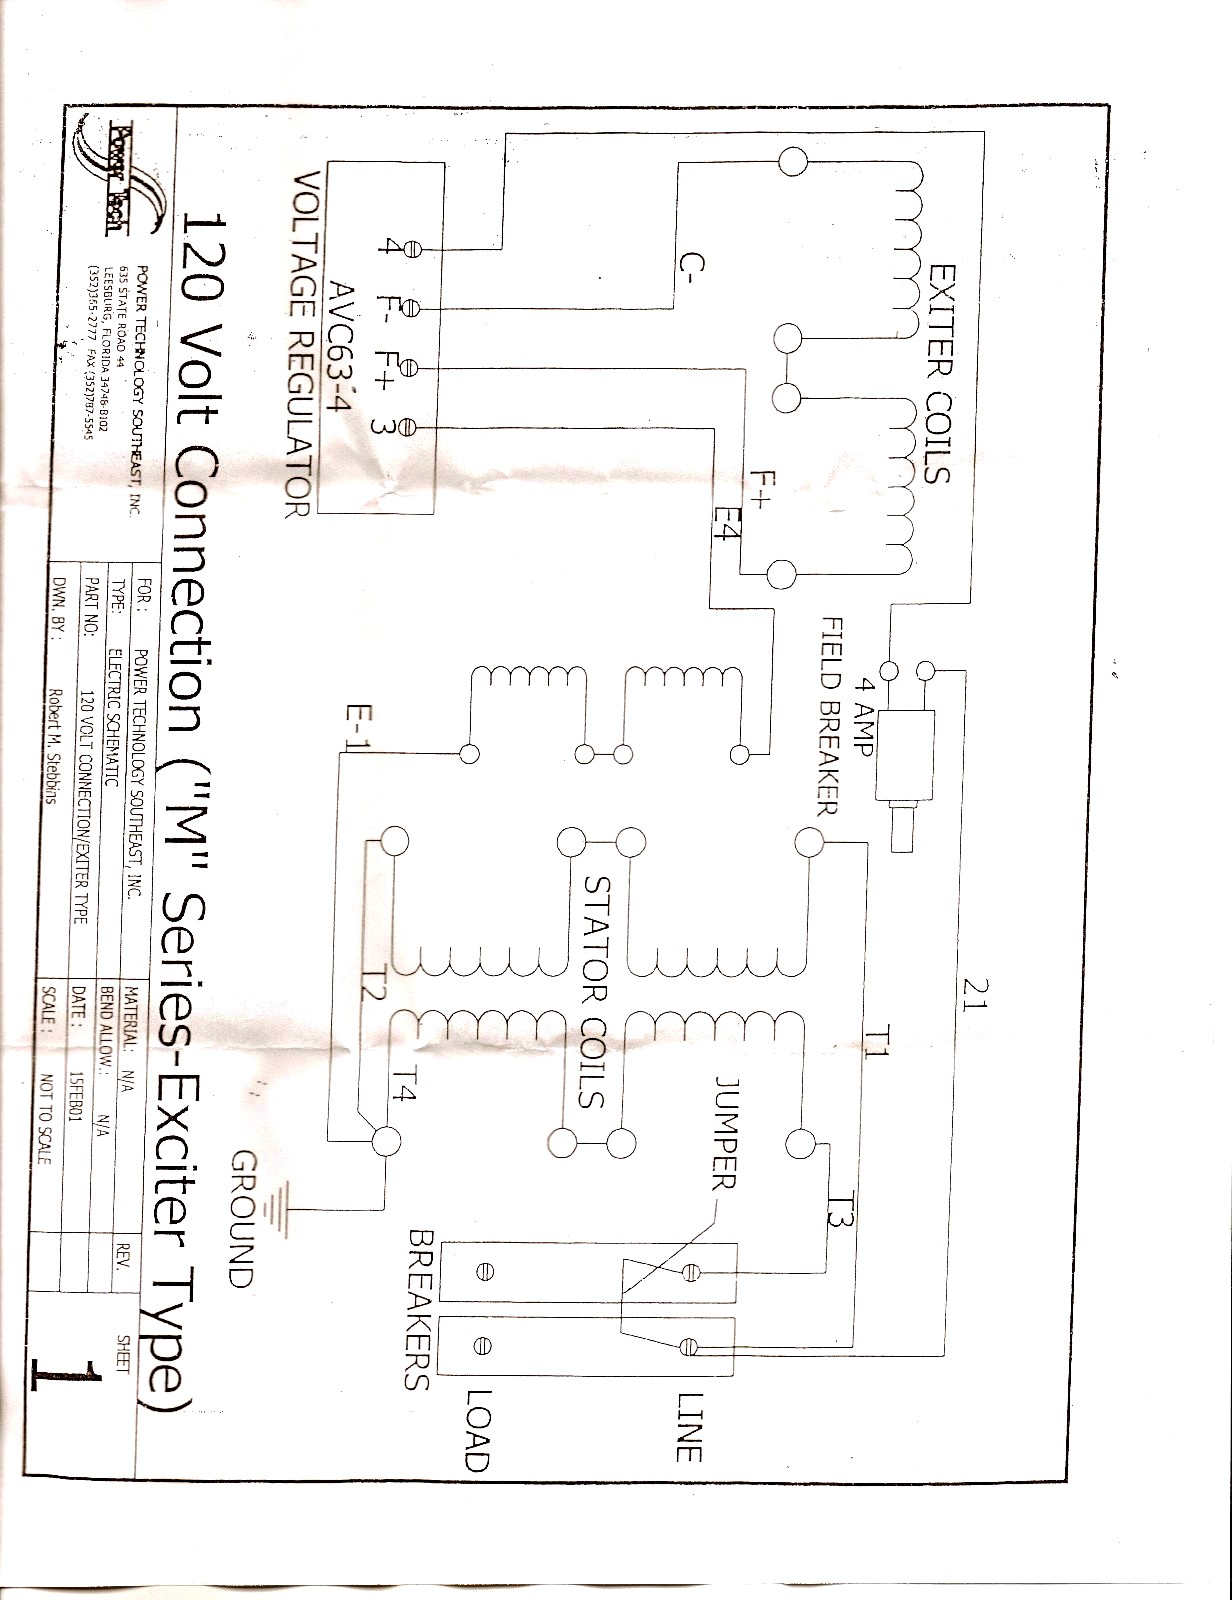 powertech 15kw genny part numbers - page 3